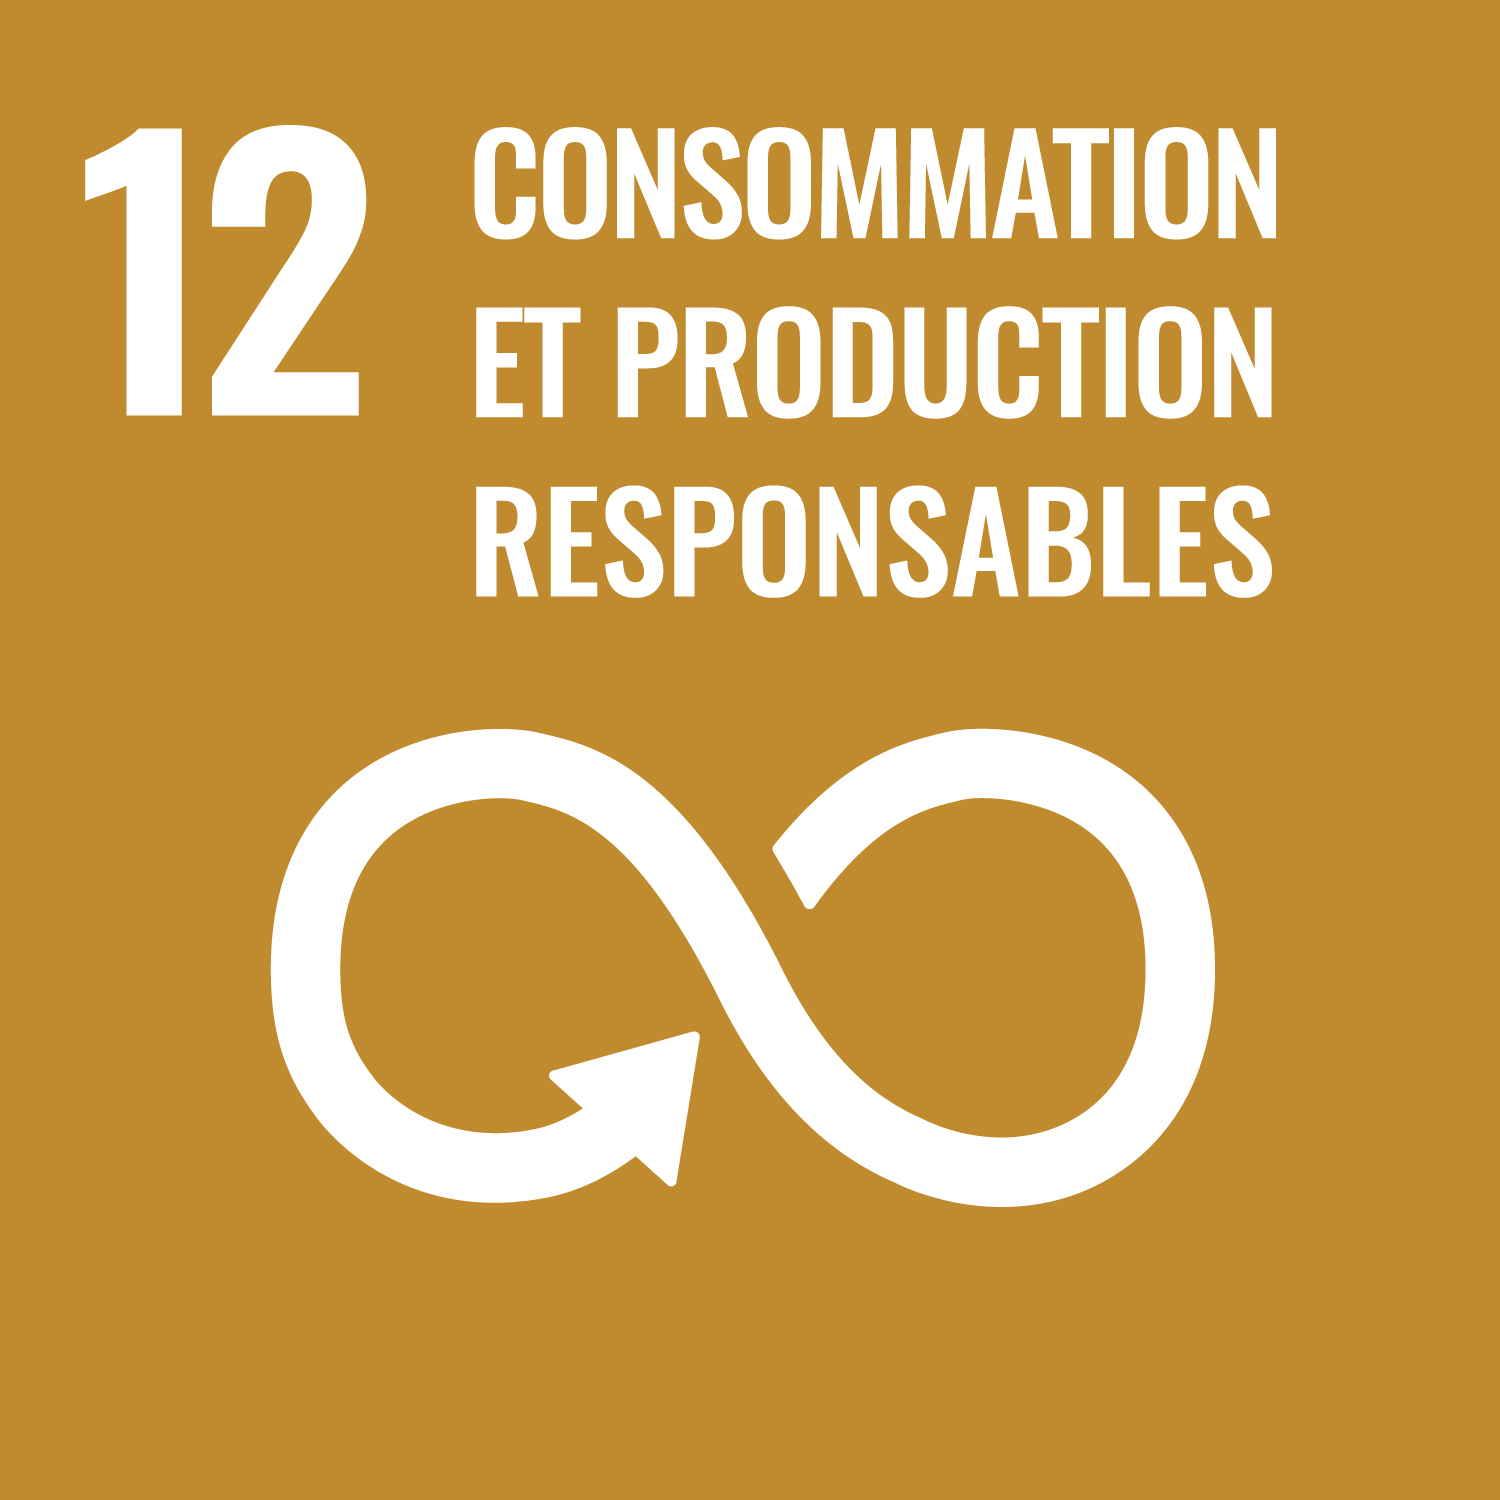 12. consommation & production responsables